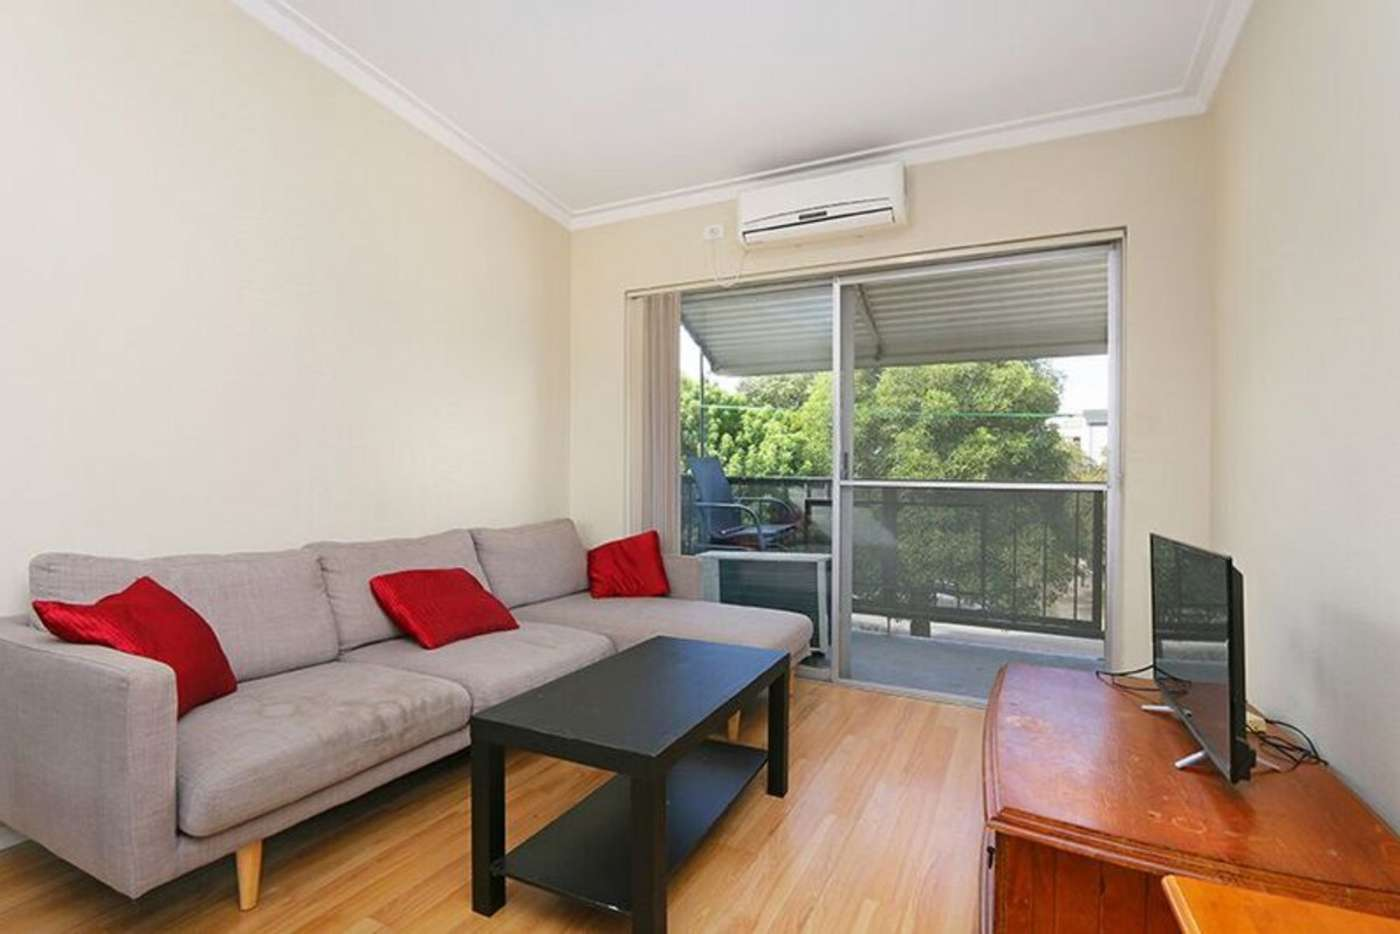 Seventh view of Homely apartment listing, 11/52 Onslow Road, Shenton Park WA 6008